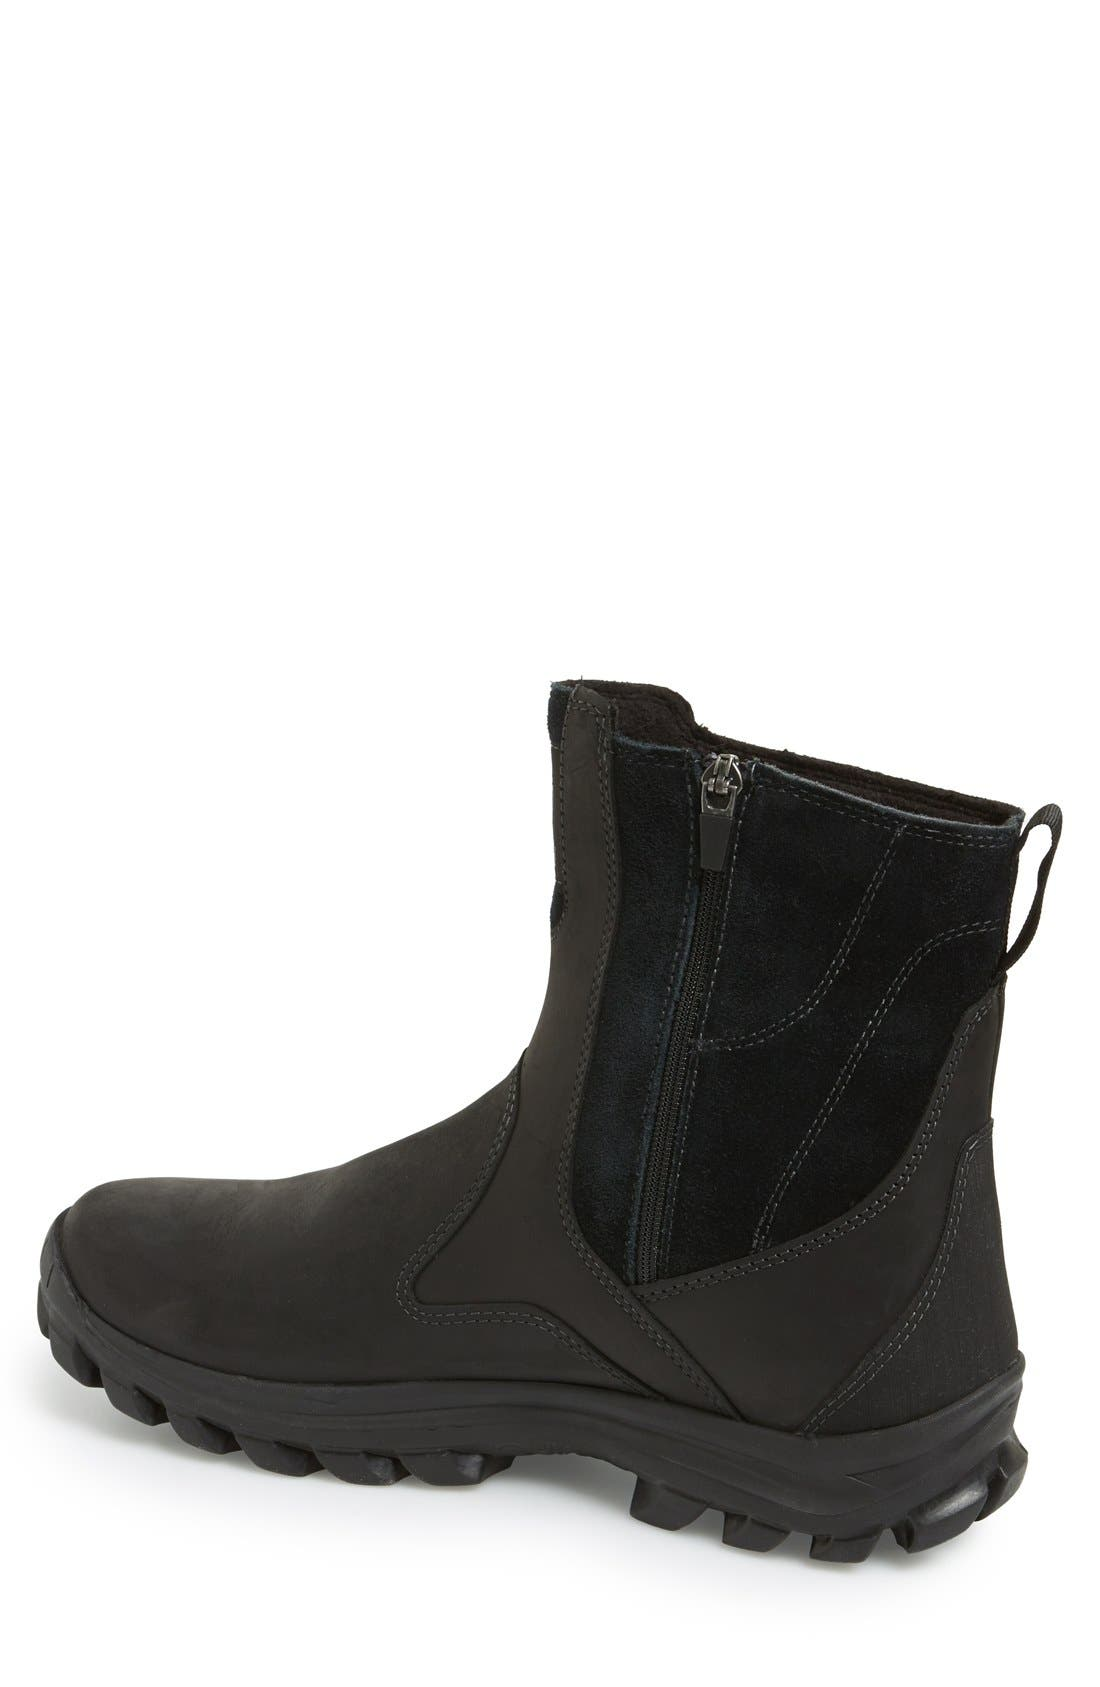 Alternate Image 2  - Timberland 'Chillberg' Waterproof Boot (Men)